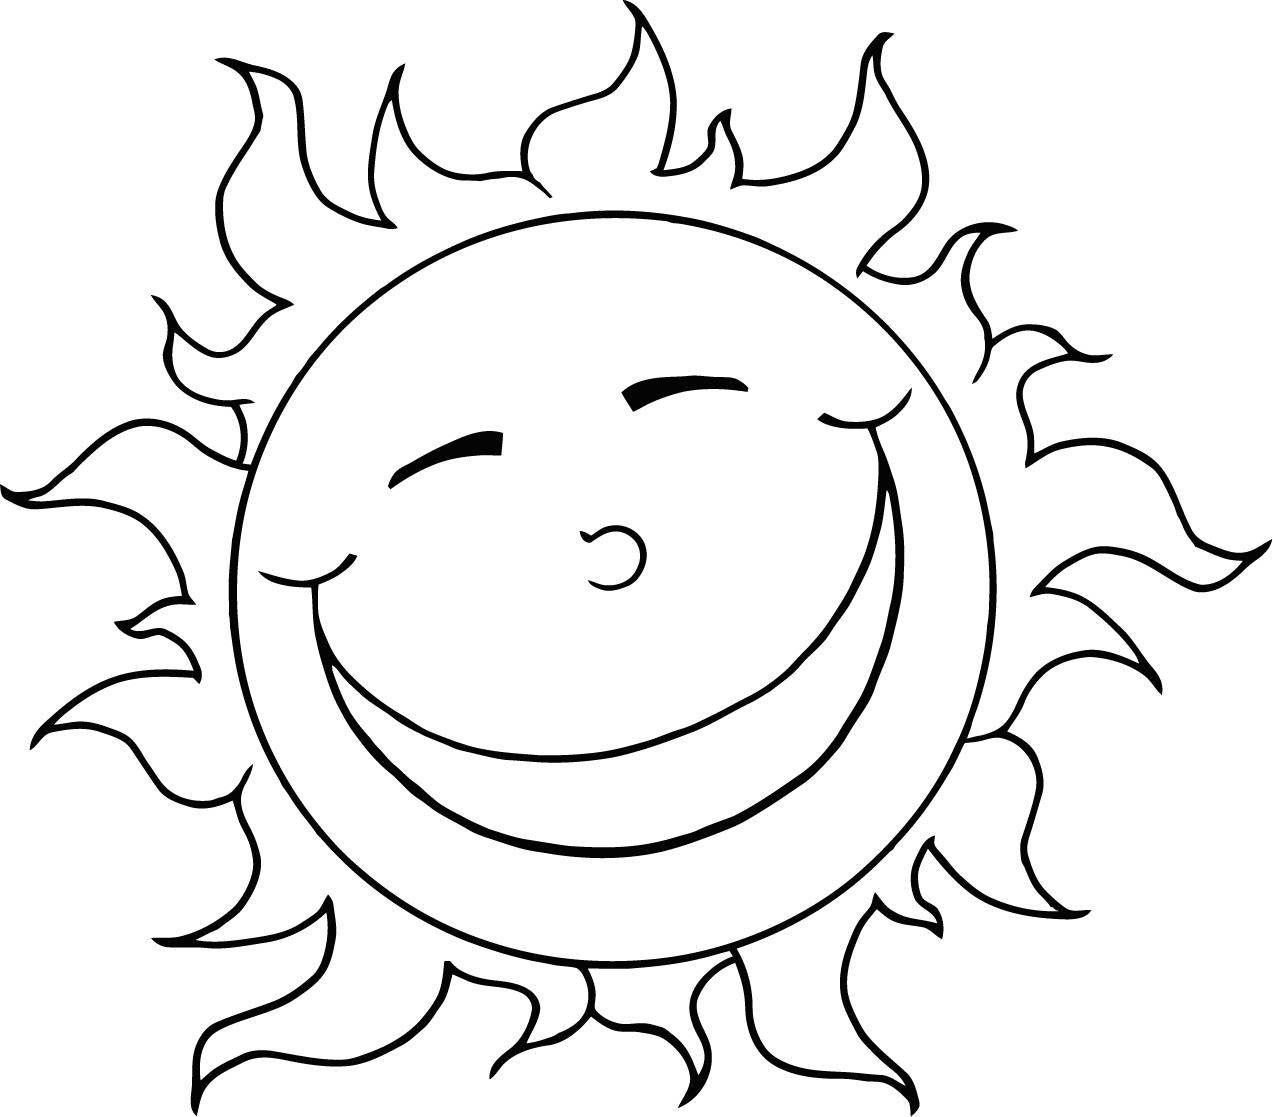 Coloring page of the sun